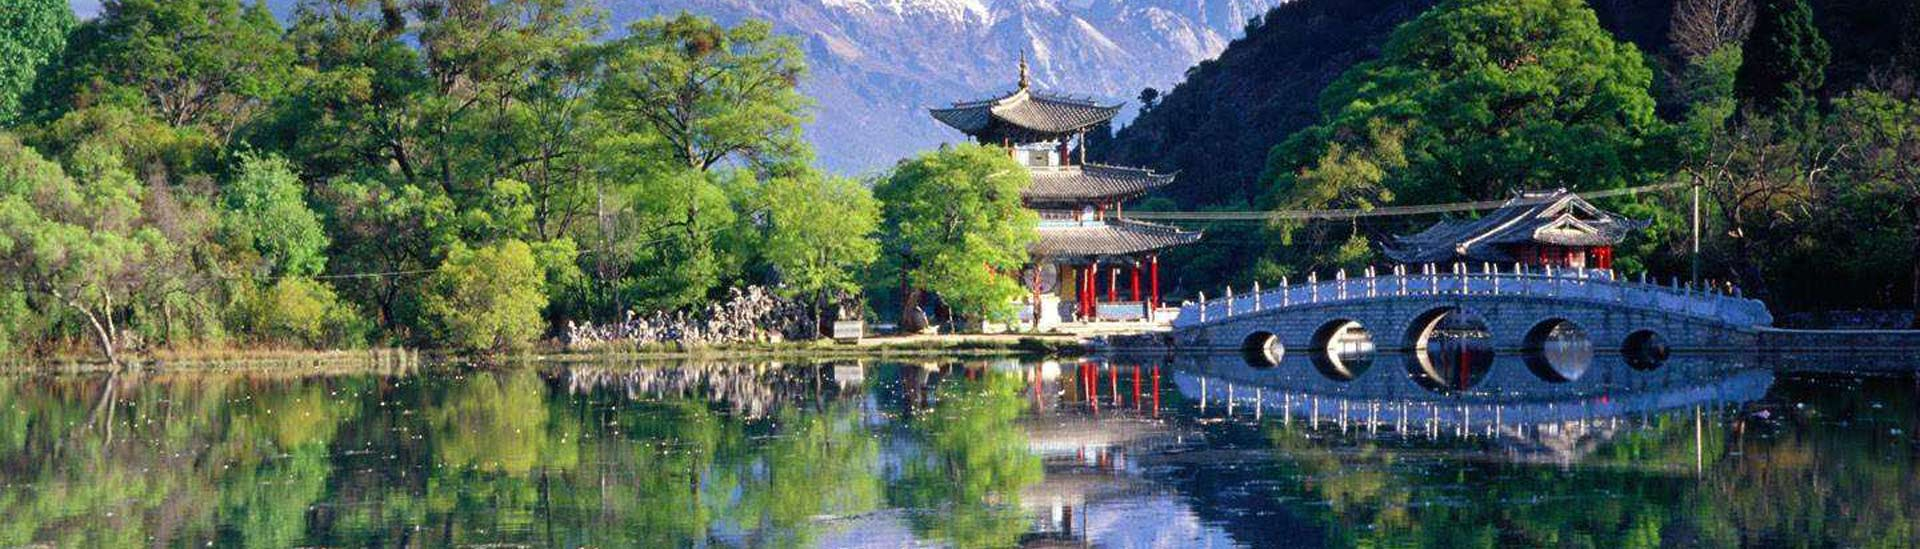 1 Day Lijiang Ancient Culture Tour